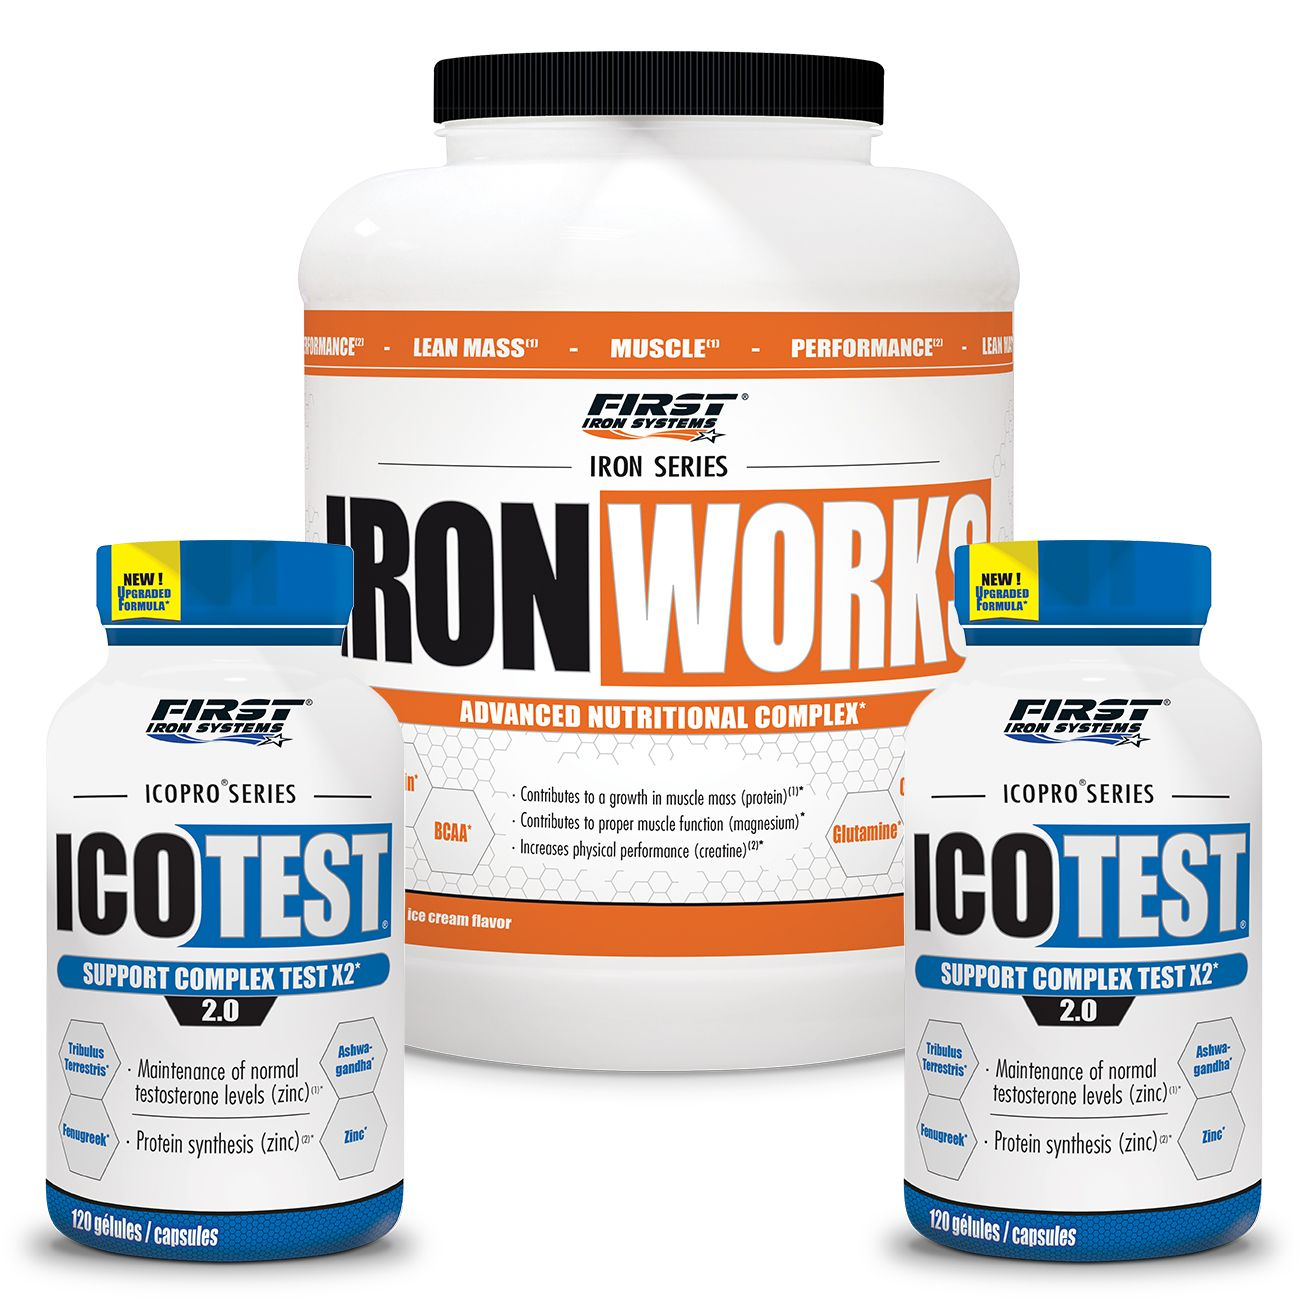 FIRST IRON SYSTEMS PACK 4 : 1 IRON WORKS 2,2KG + 2 ICOTEST 2.0